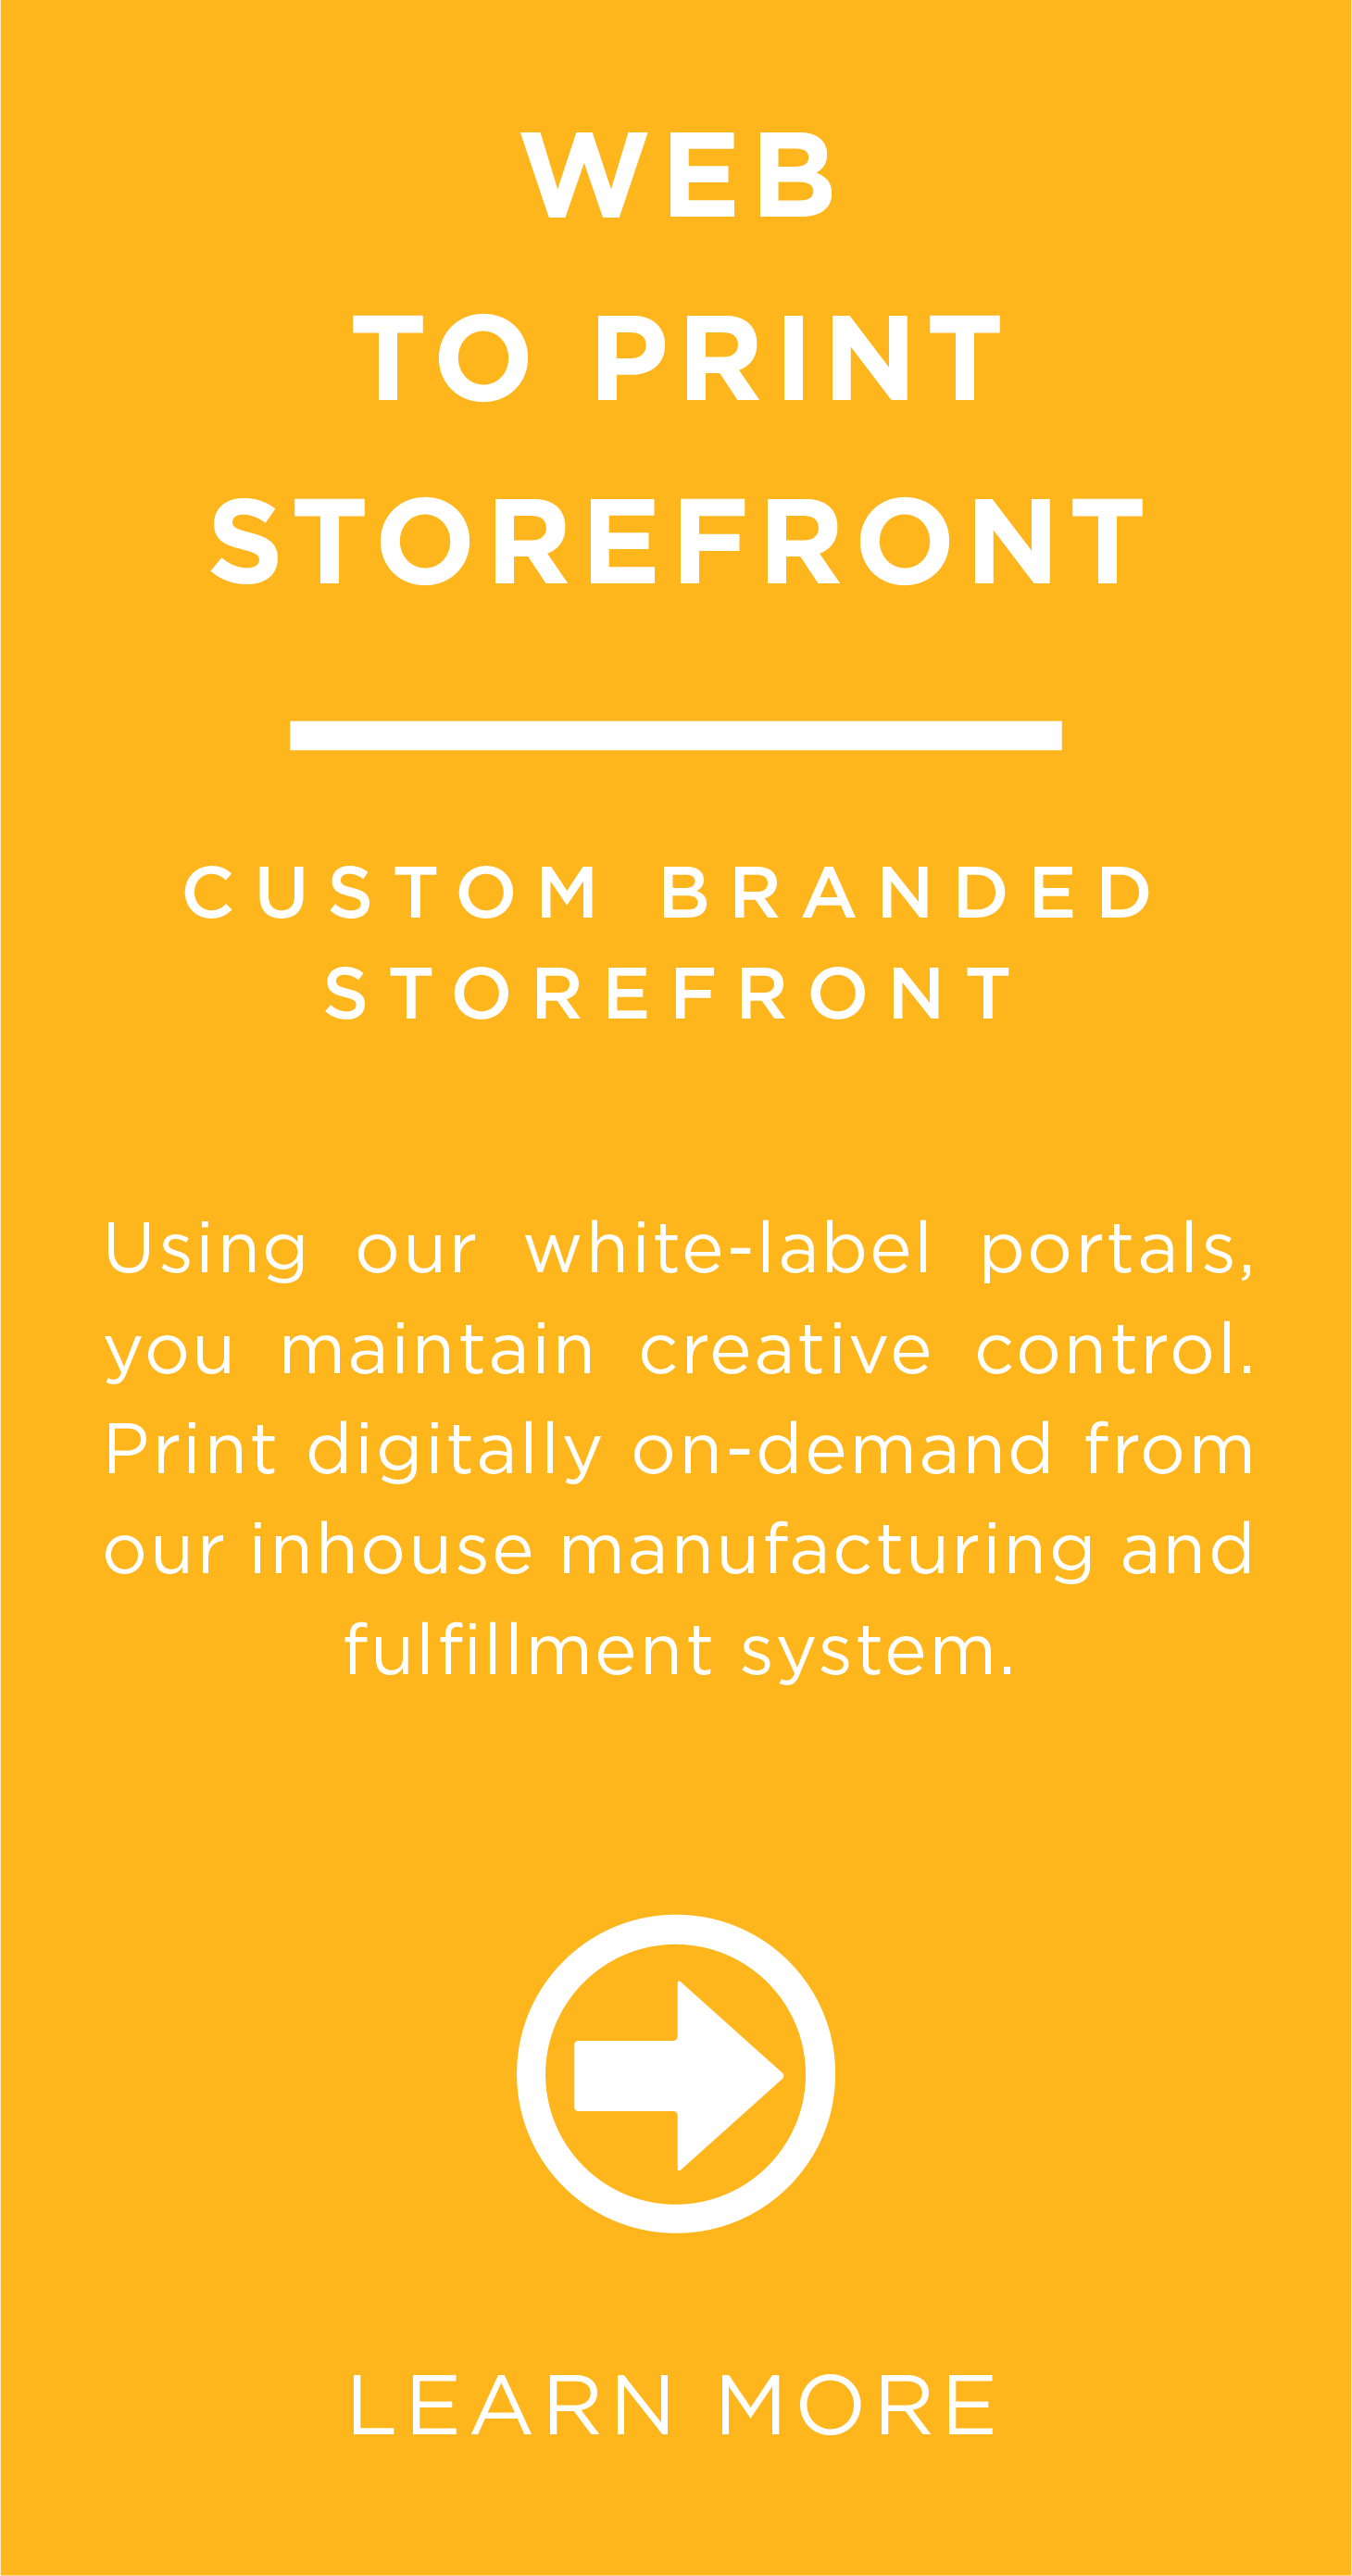 Using our white-label portals, you maintain creative control. Print digitally on-demand from our in-house manufacturing and fulfillment system.